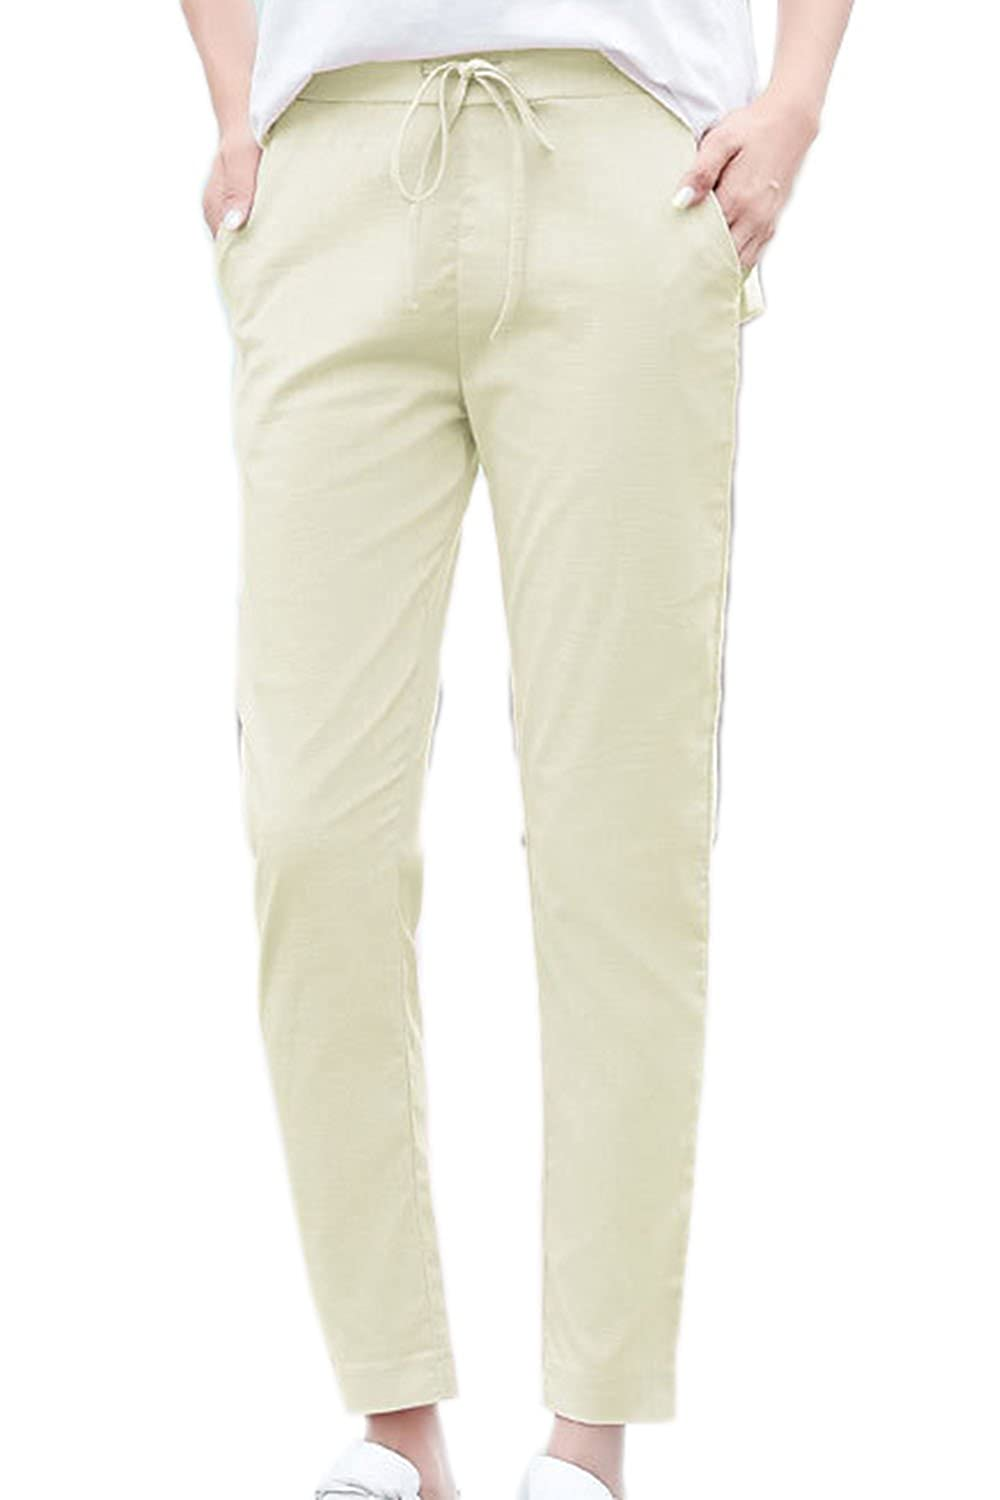 Womens Casual Linen Cotton Ankle Pants Plus Size Straight Ankle Trousers CAPLMM504